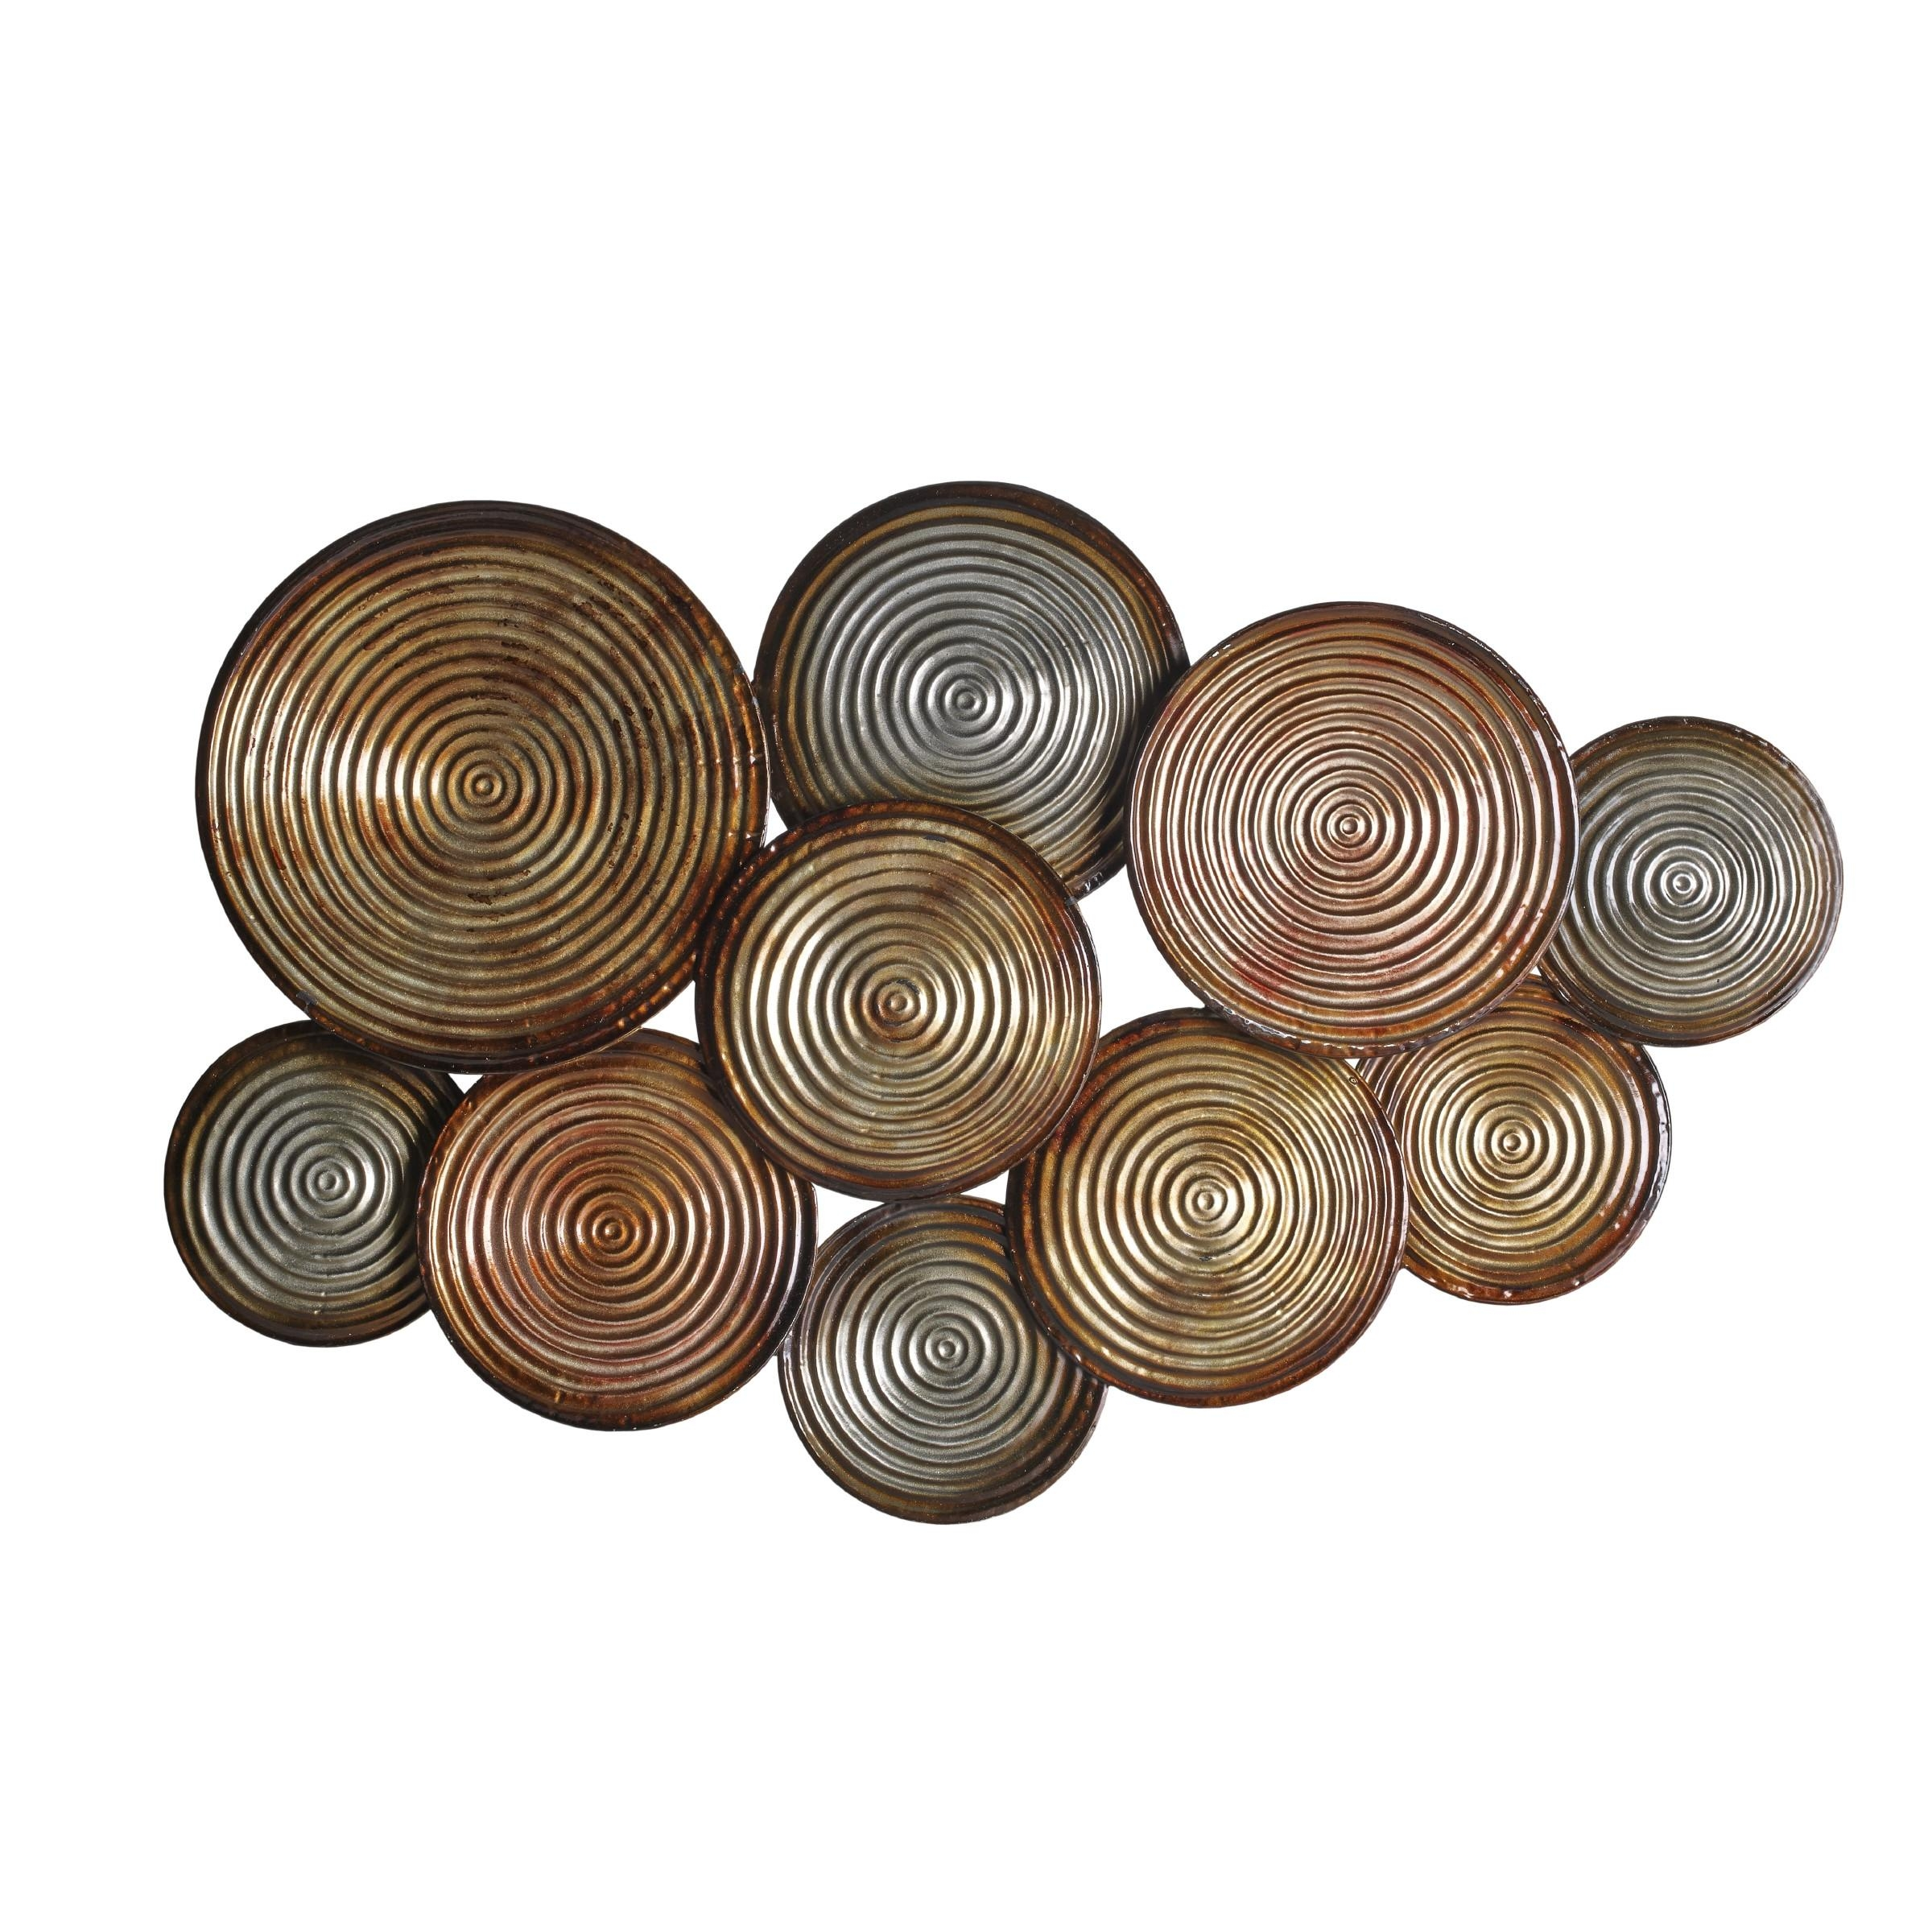 Wall Art Designs: Dimensional Wall Art Ribbed Draws Rolling Regarding Decorative Plates For Wall Art (Image 16 of 20)